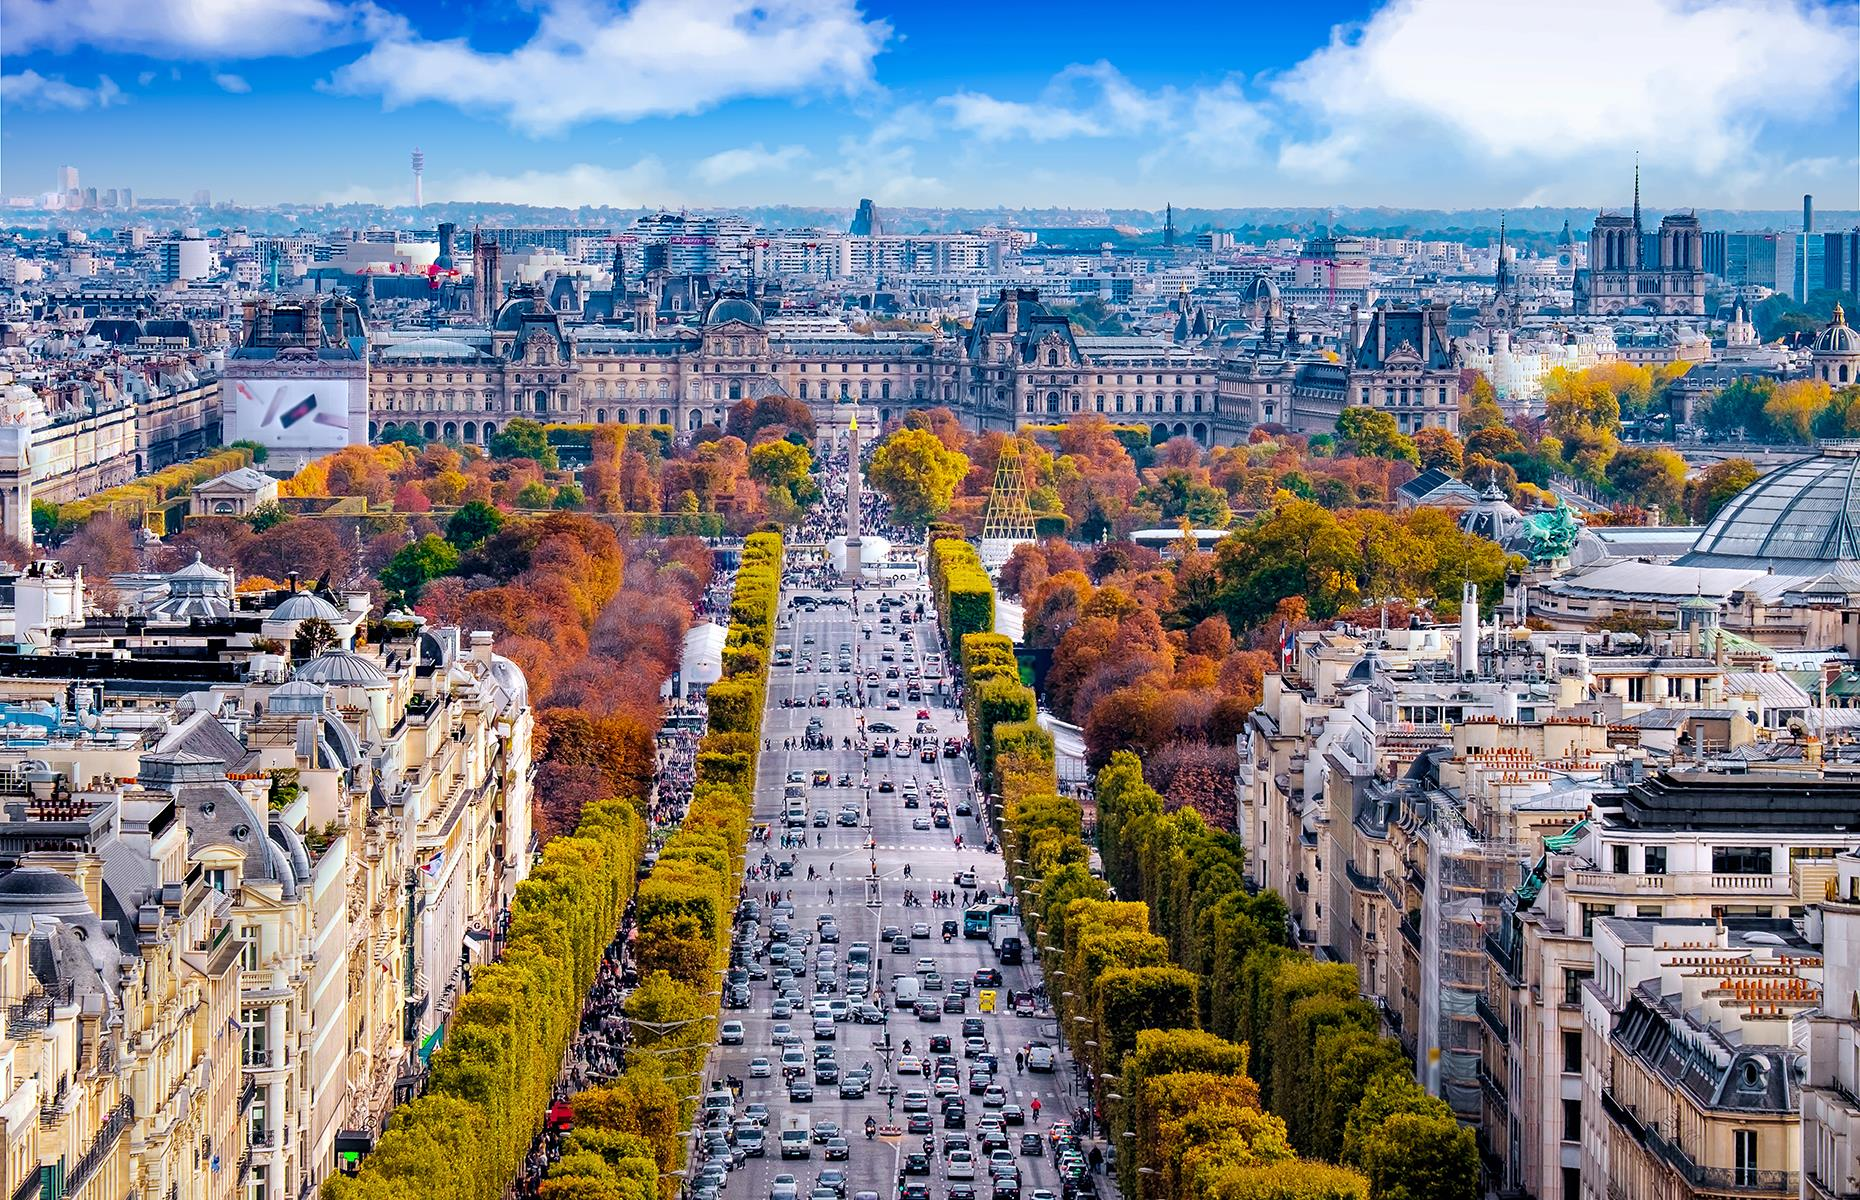 Slide 3 of 31: Usually visited by around 300,000 people every day, the Avenue des Champs-Élysées is, quite simply, picture perfect. Just over 1.2-miles (2km) long, it's a straight tree-lined avenue, connecting two of Paris' main attractions: Place de la Concorde and the Arc de Triomphe. The avenue, affectionately called Les Champs by locals, is home to some of the most exclusive designer stores in the city, as well as the famous Ladurée patisserie.